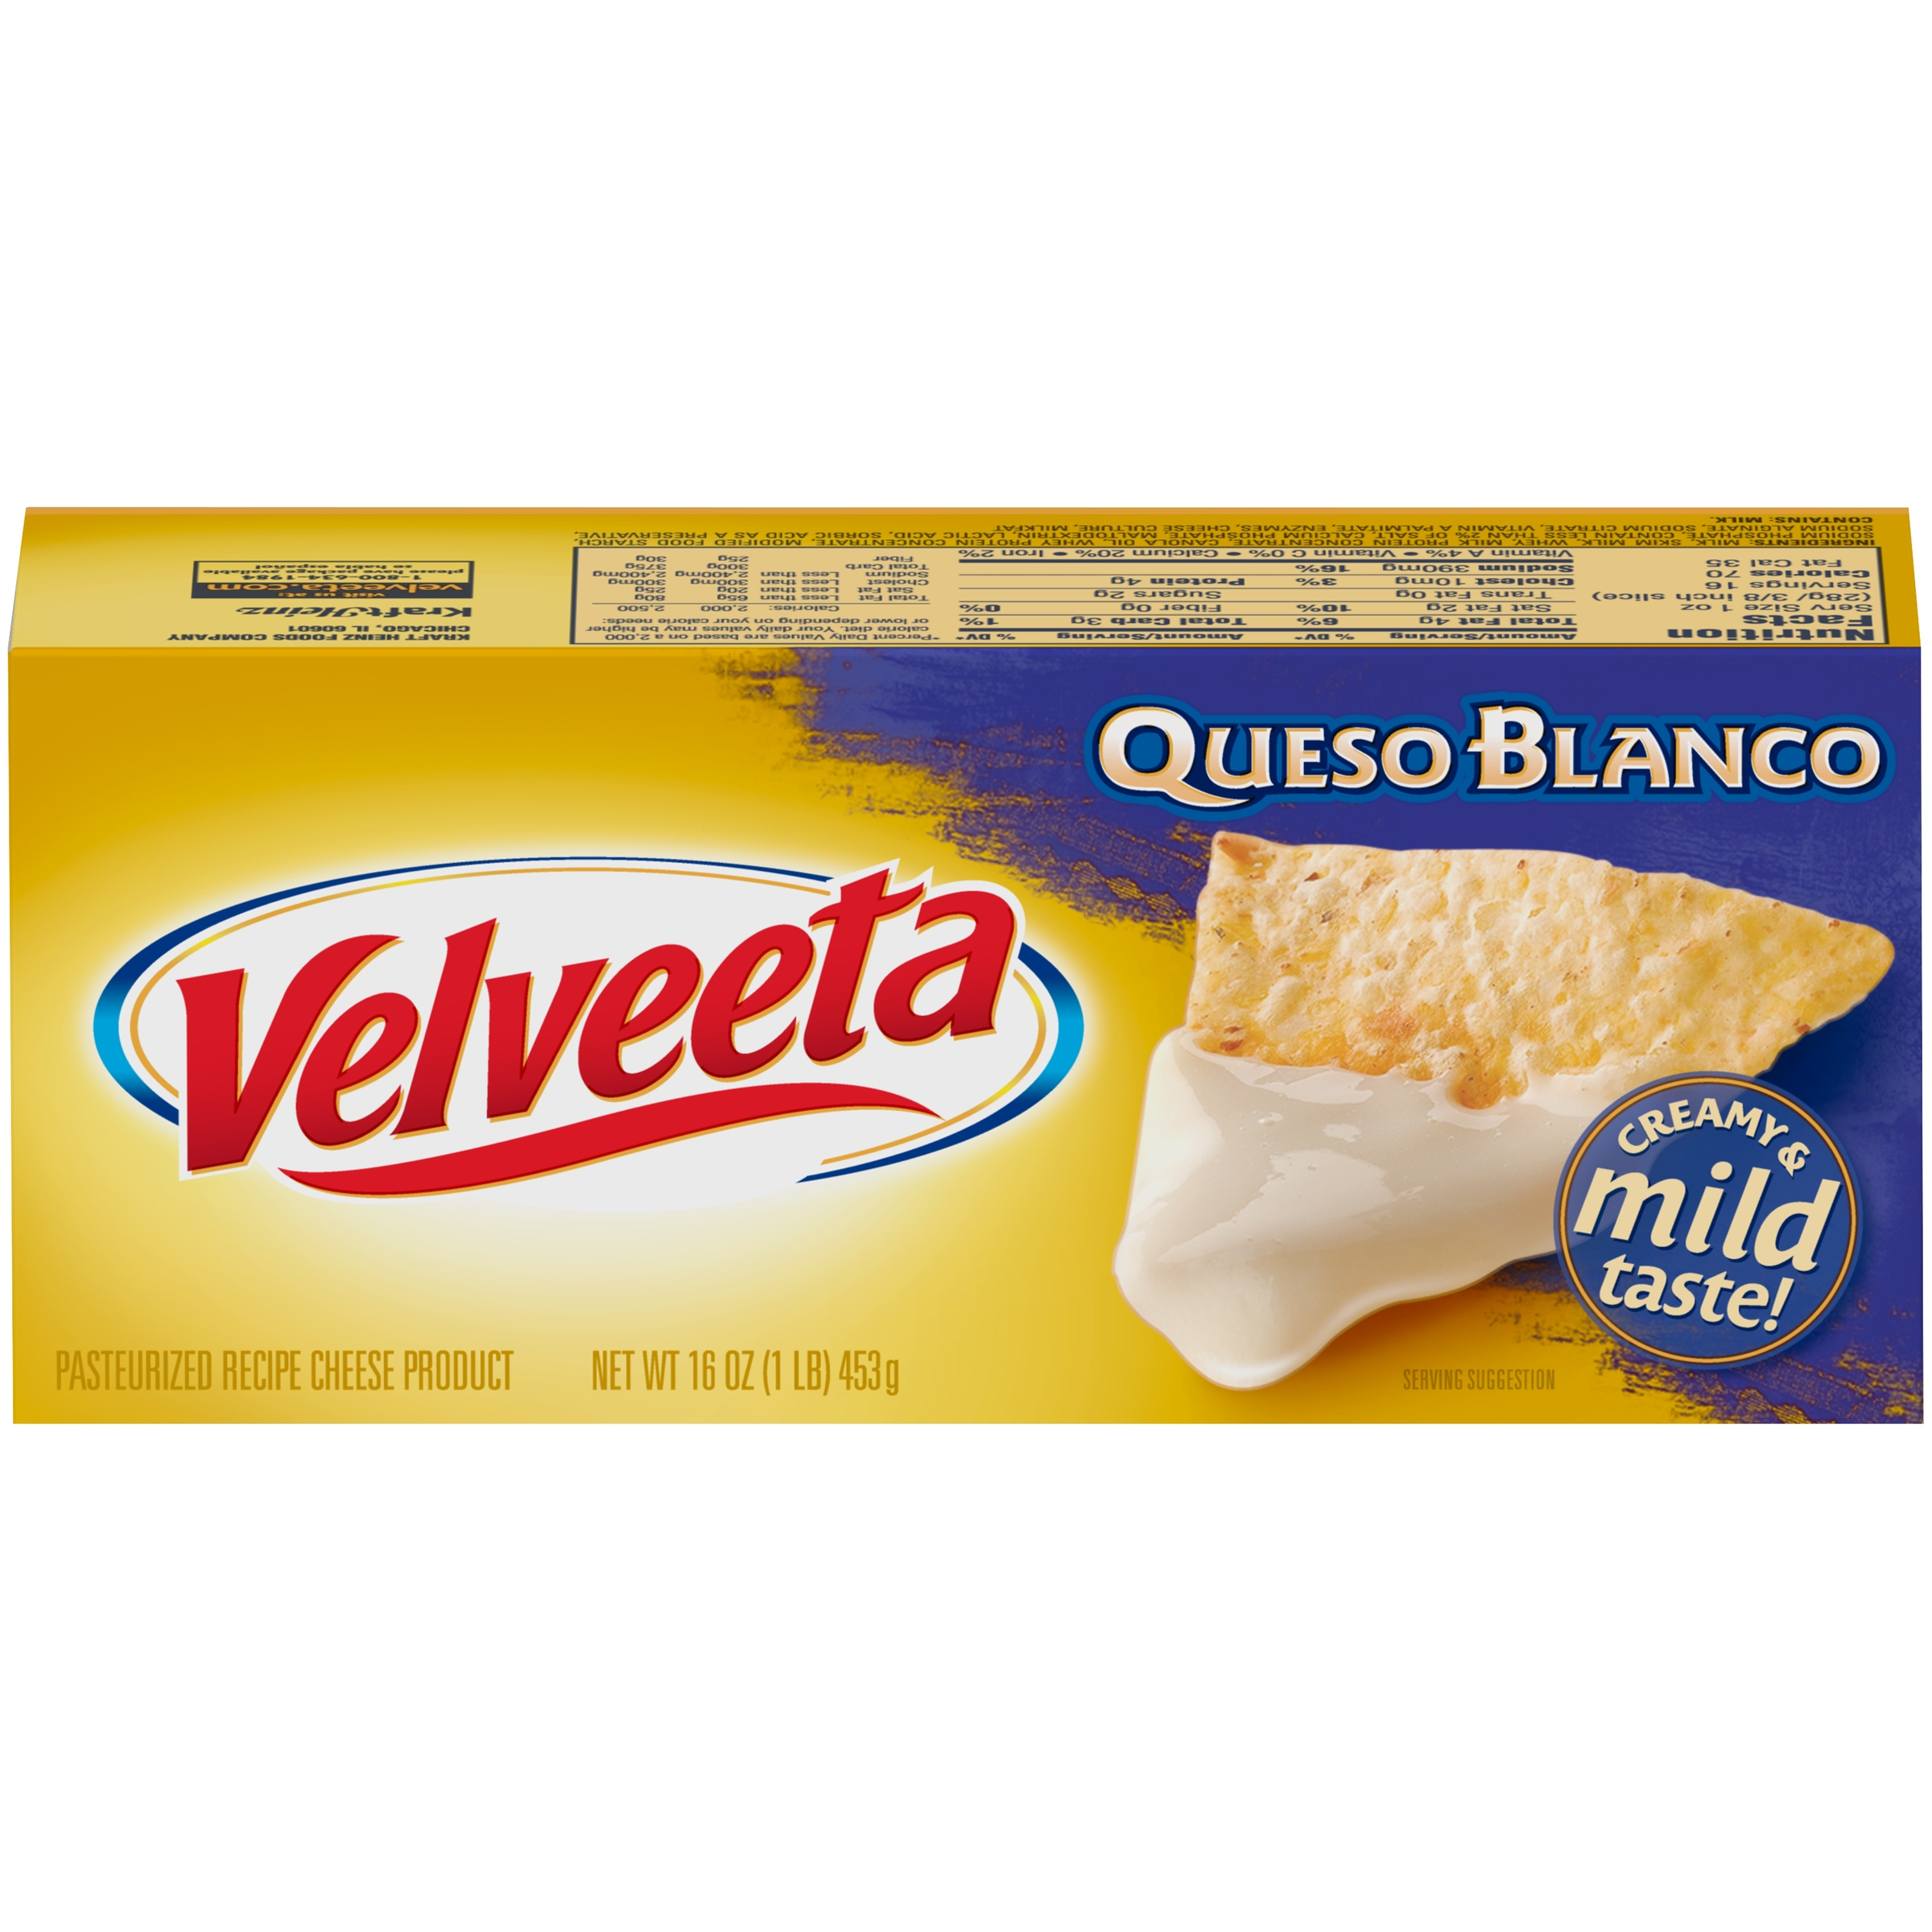 Velveeta Queso Blanco Cheese 16 oz. Box